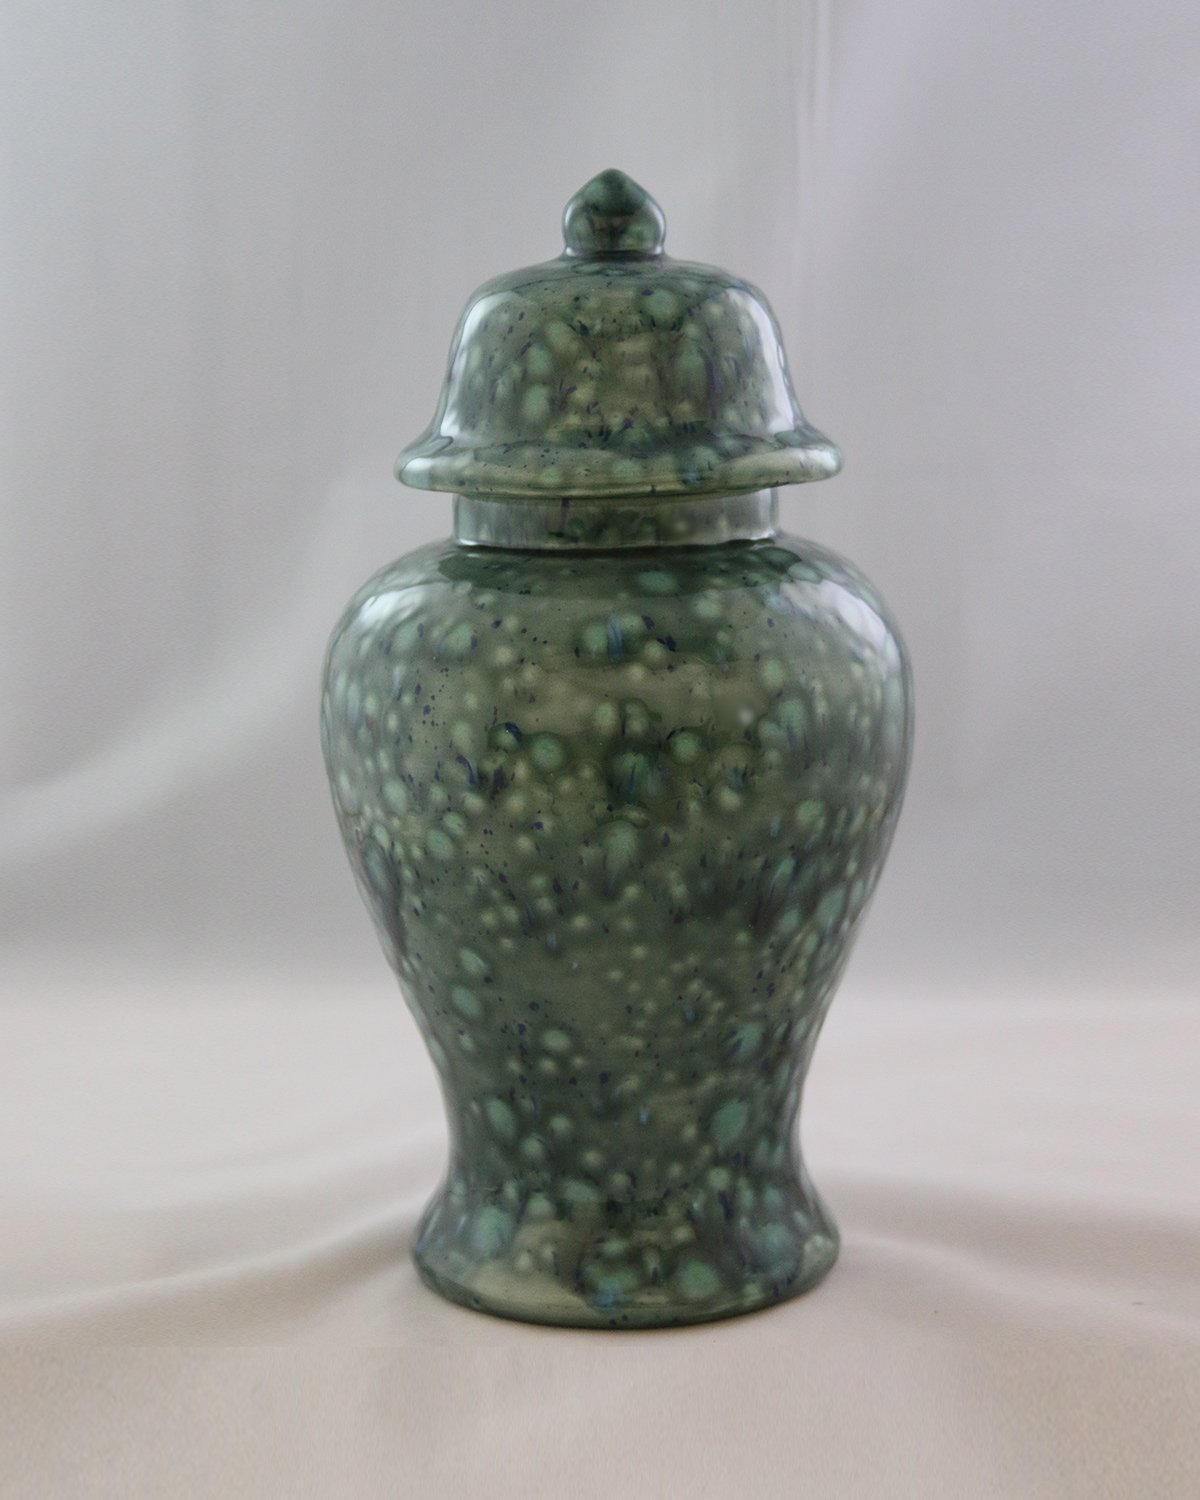 Handcrafted Ceramic Urn - Azure -122 cu in - Various Colors and Sizes Available, Cremation Urn for Ashes, Pet Urn